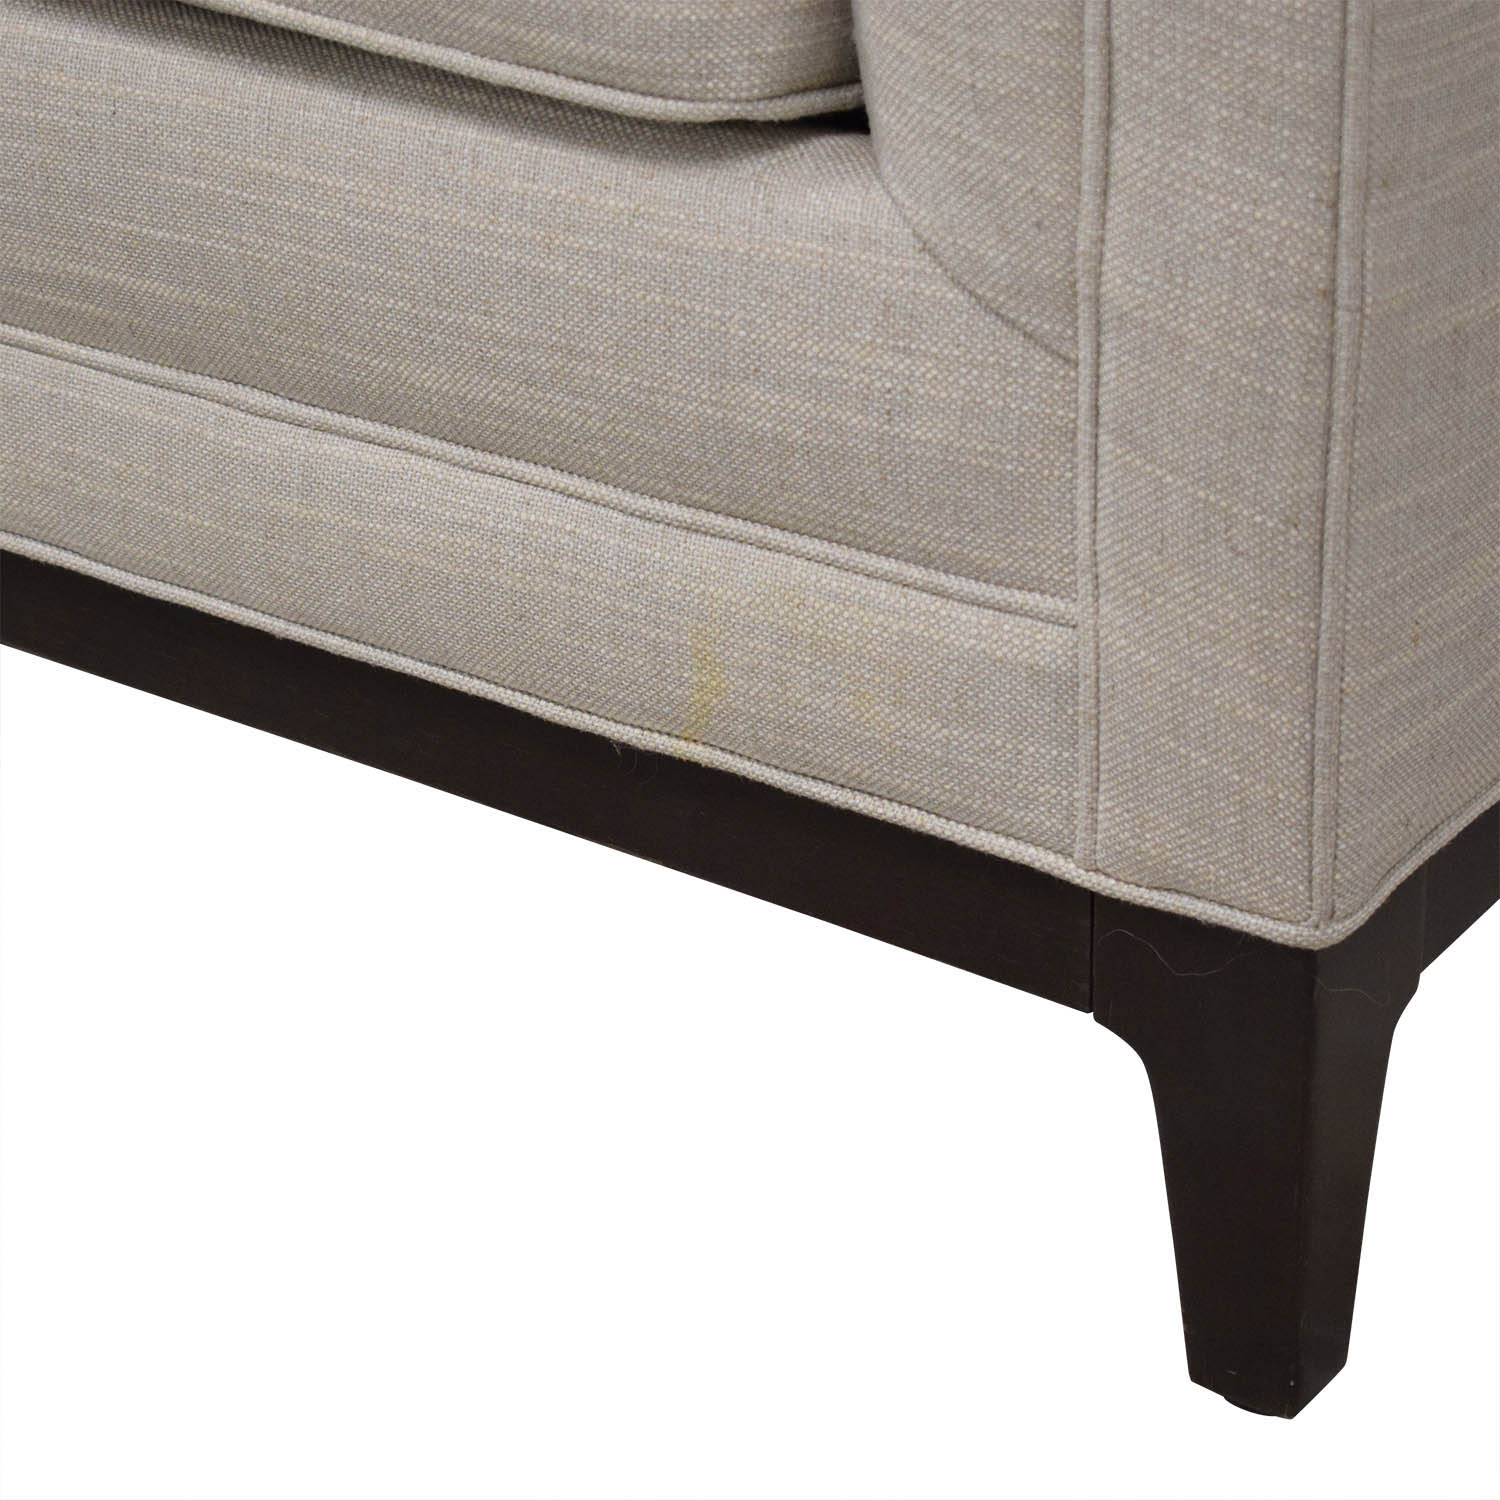 Ethan Allen Ethan Allen Anderson Couch ma